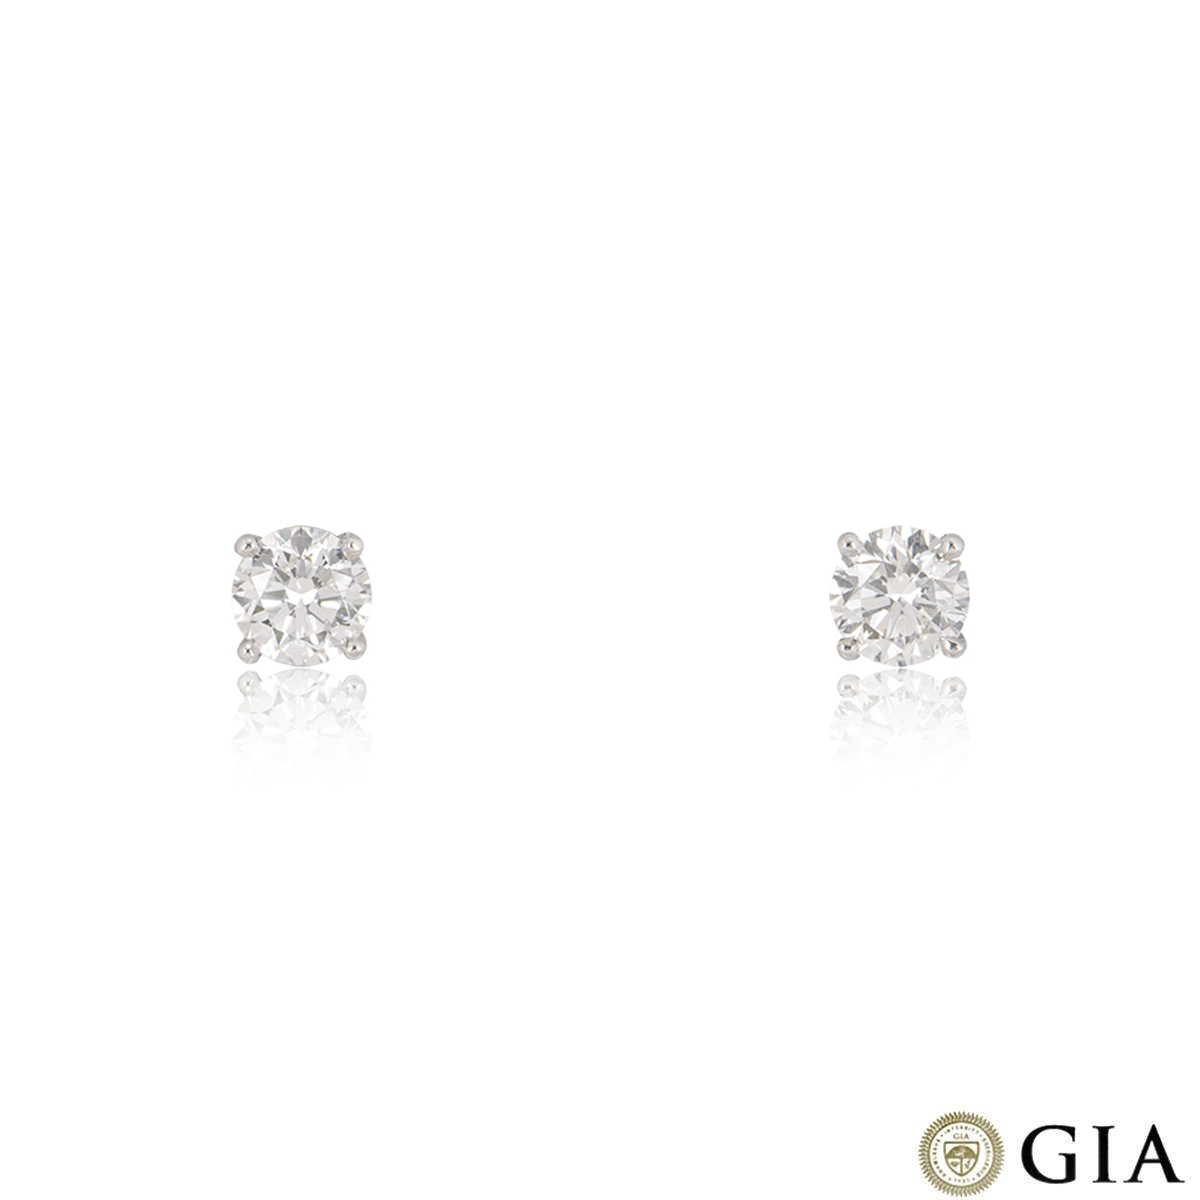 White Gold Round Brilliant Cut Diamond Earrings 1.60ct TDW